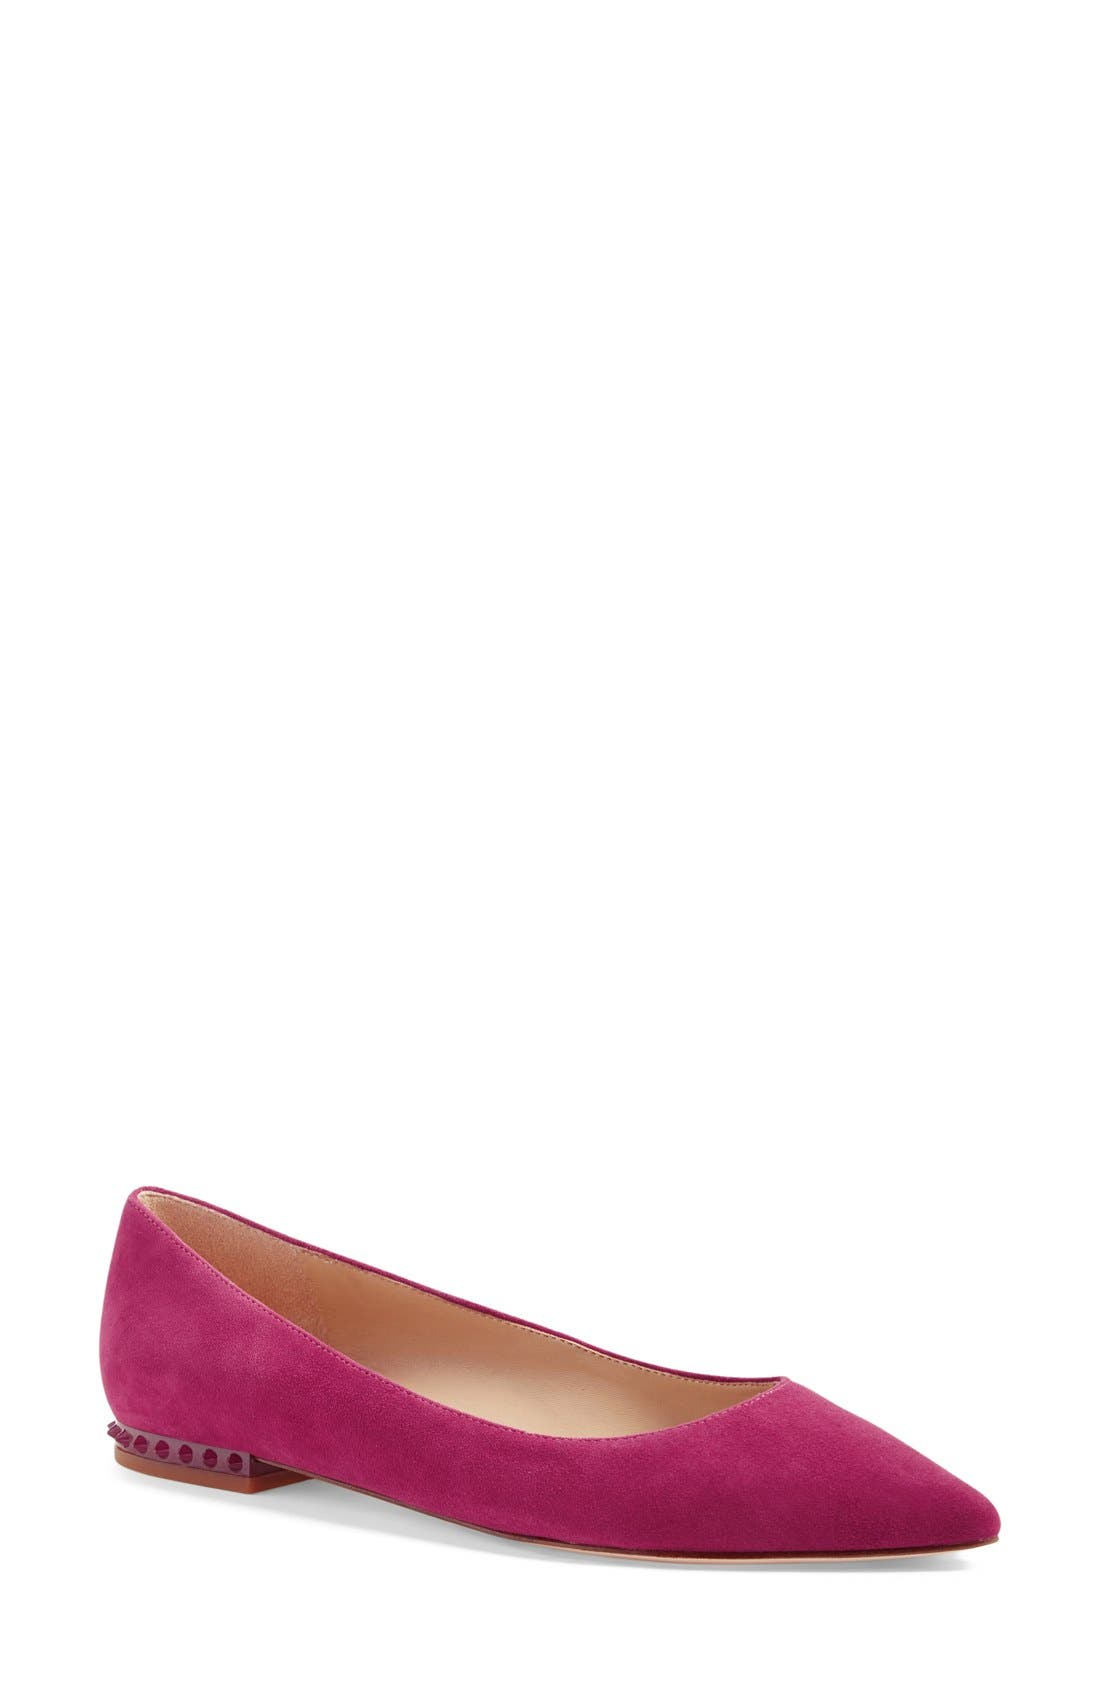 Alternate Image 1 Selected - Sam Edelman 'Reyanne' Spike Rand Pointy Toe Flat (Women)